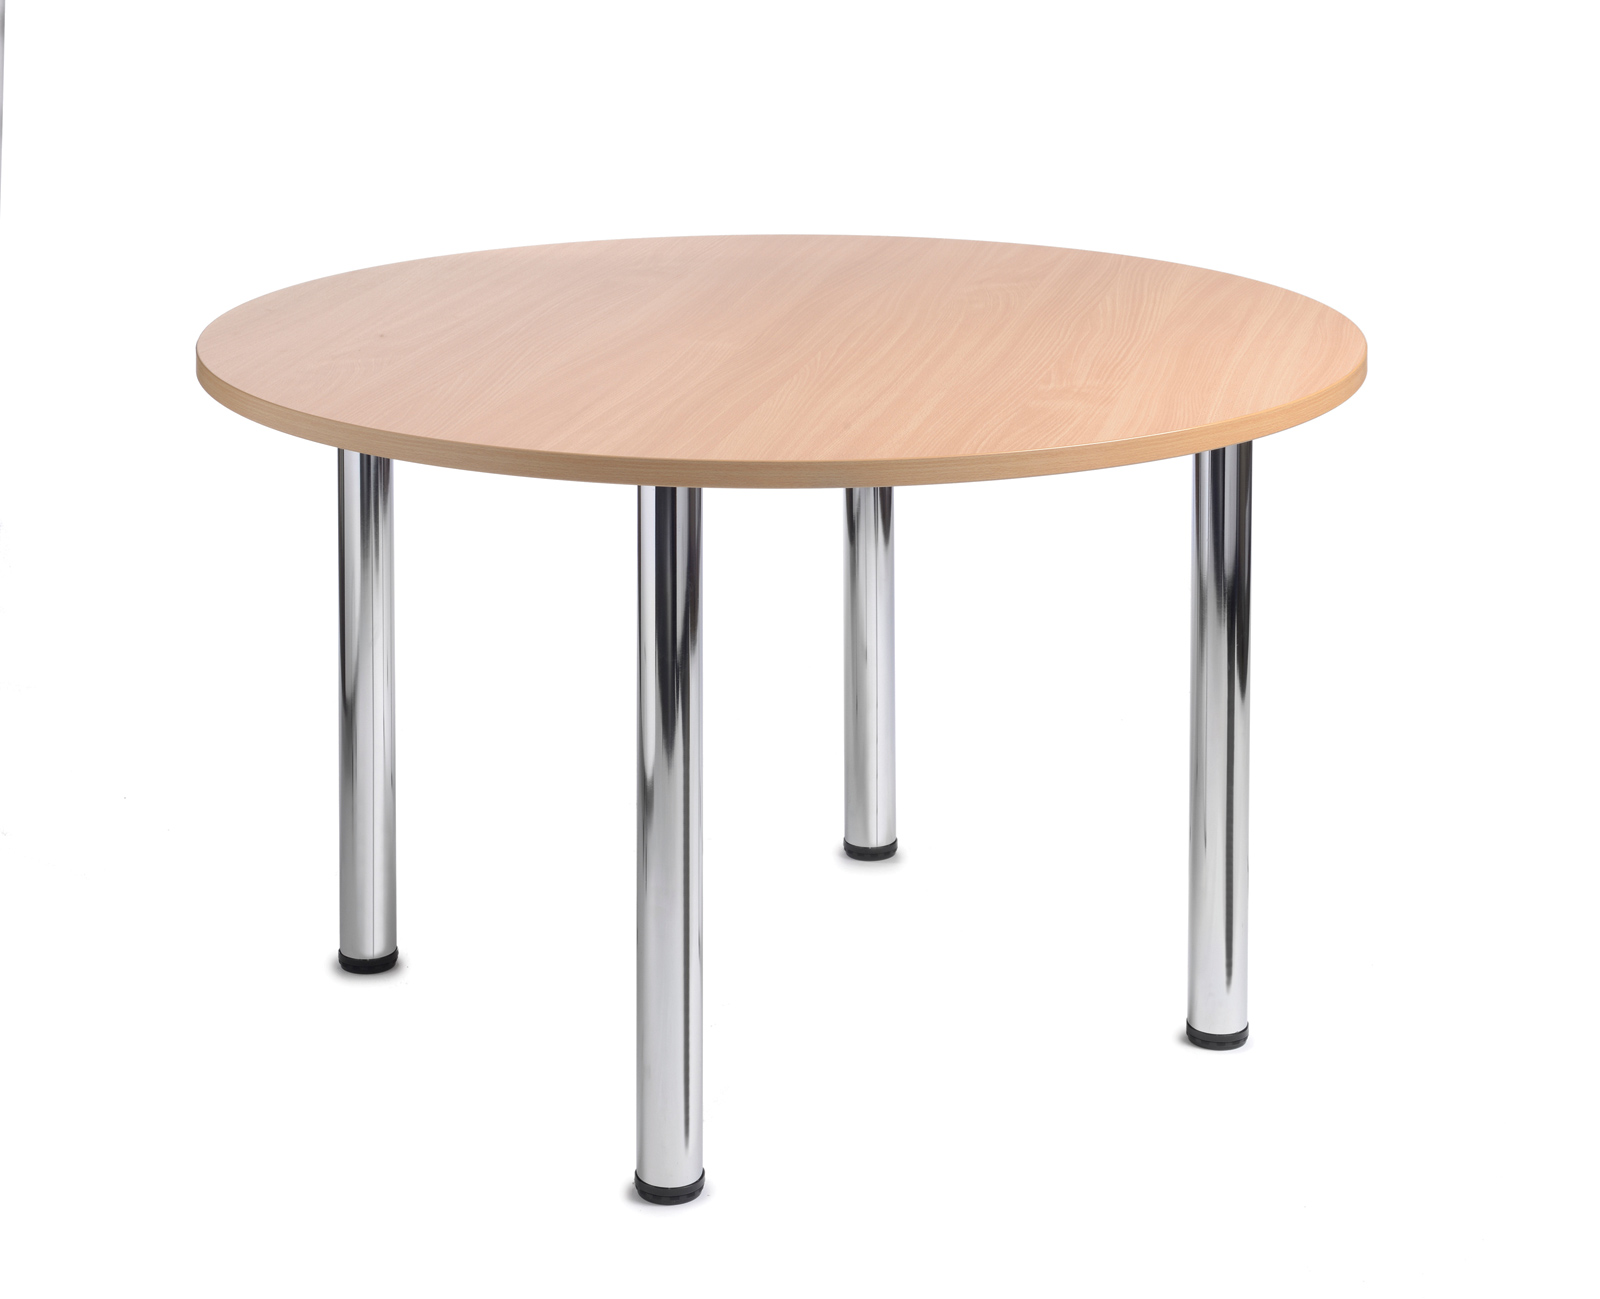 1200mm diameter Top + Chrome radial Legs - Beech